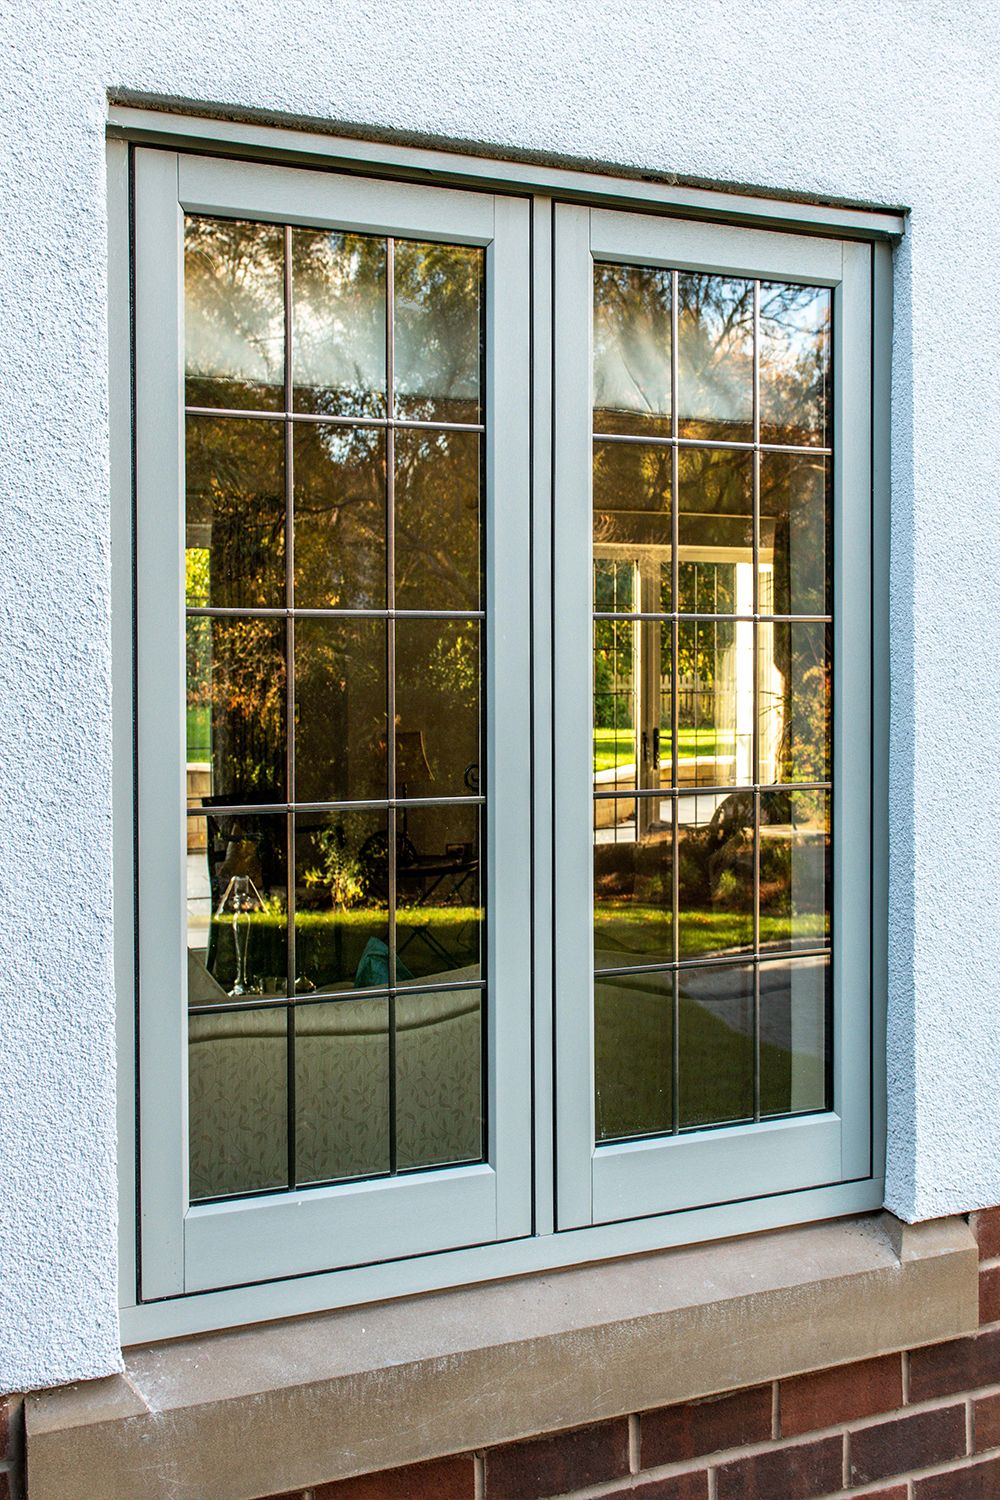 Authentic Flush Casement Windows Windows Window Styles Timber Windows